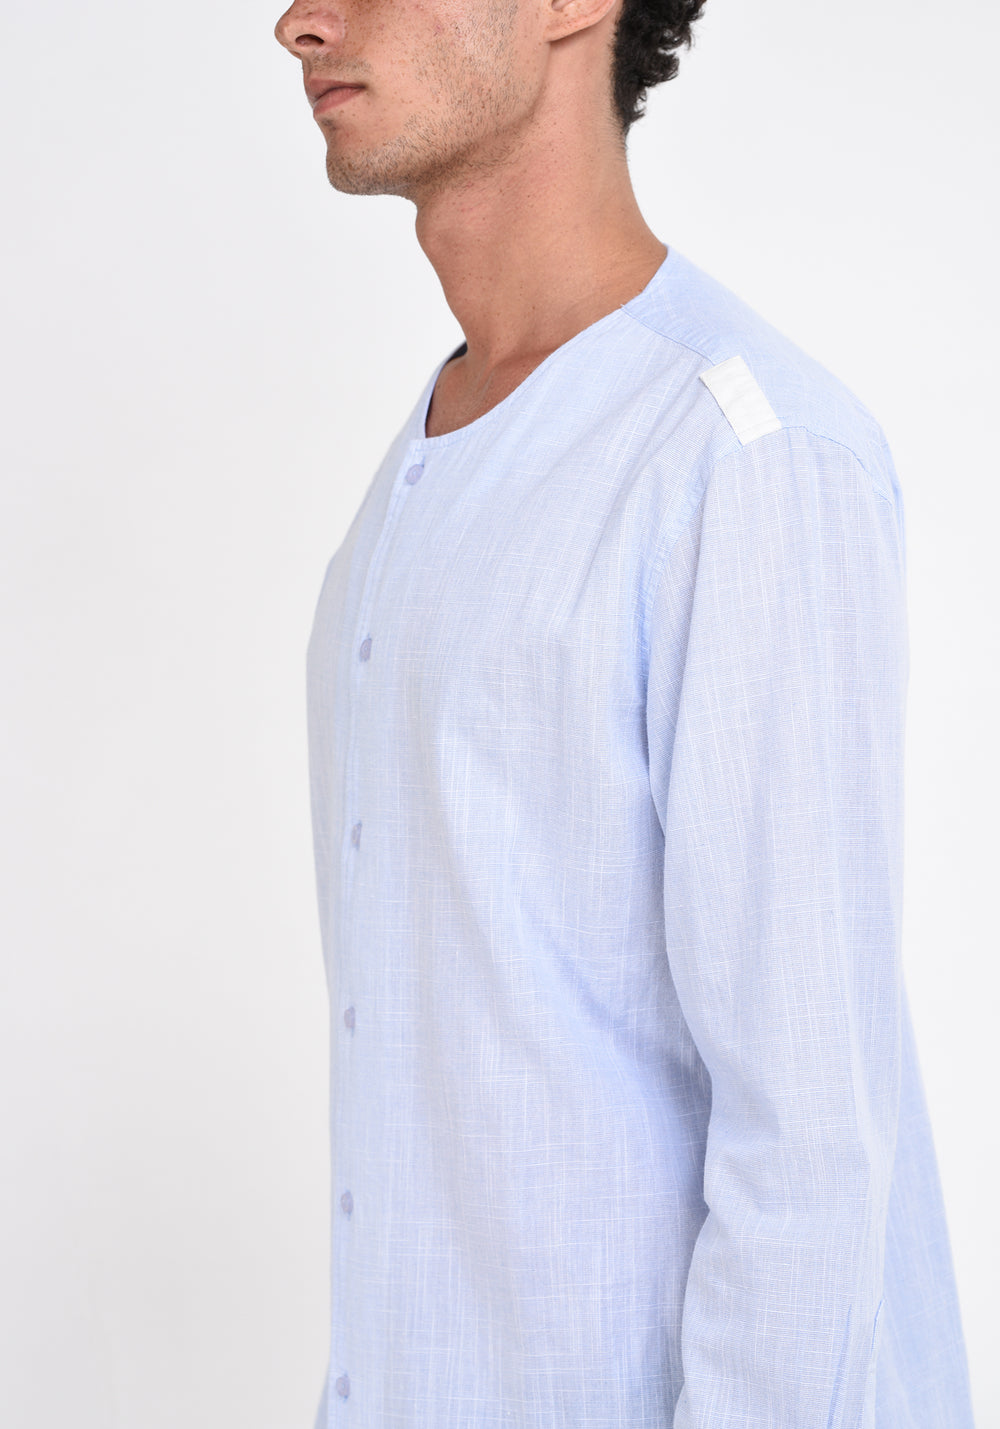 LONG SLEEVED SHIRT WITH SHOULDER PATCHES - LIGHT BLUE